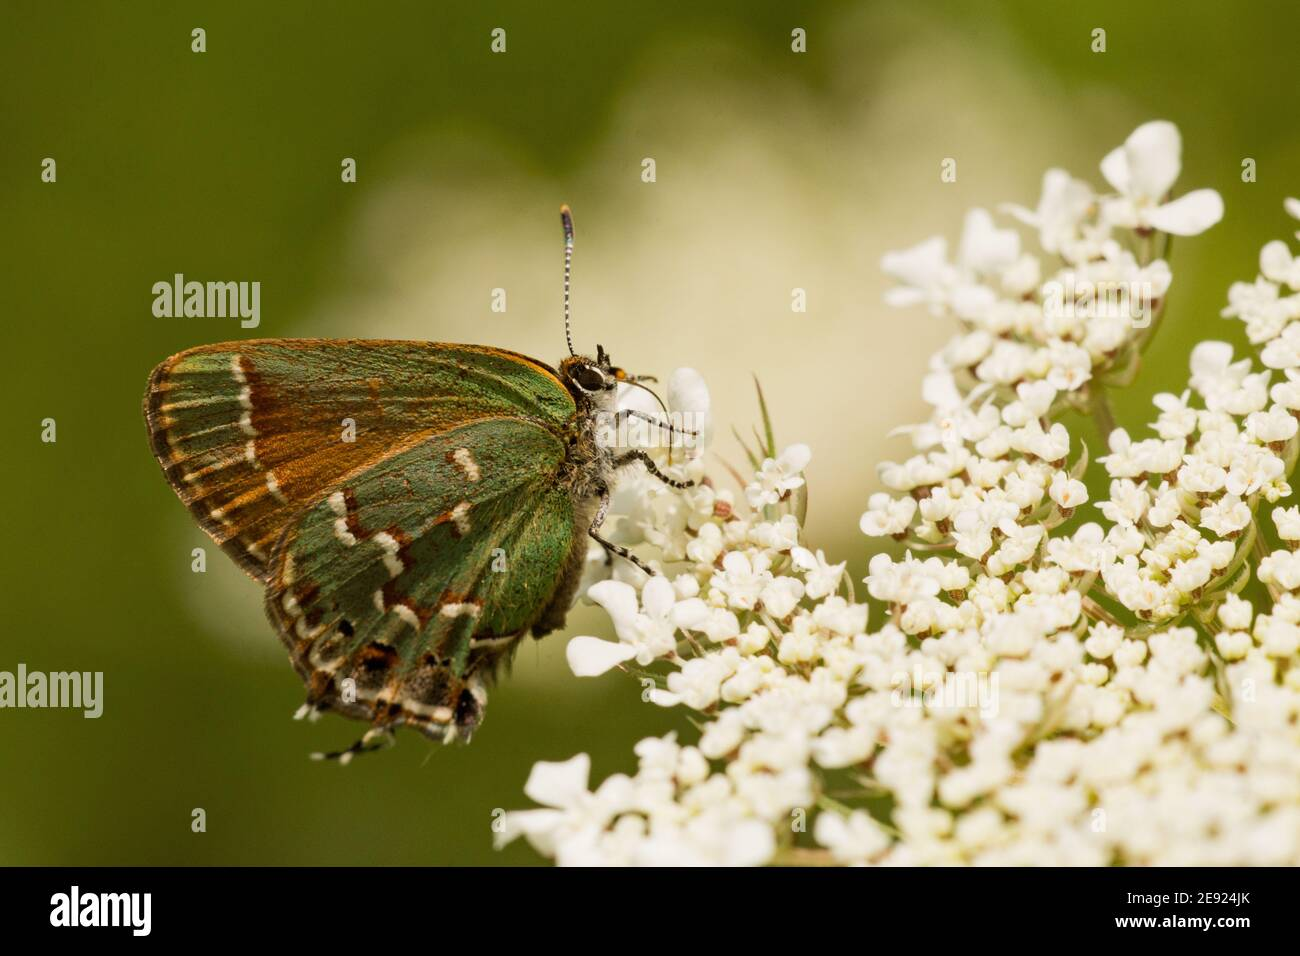 A Juniper Hairstreak butterfly feeding from flowers in the summer. Stock Photo